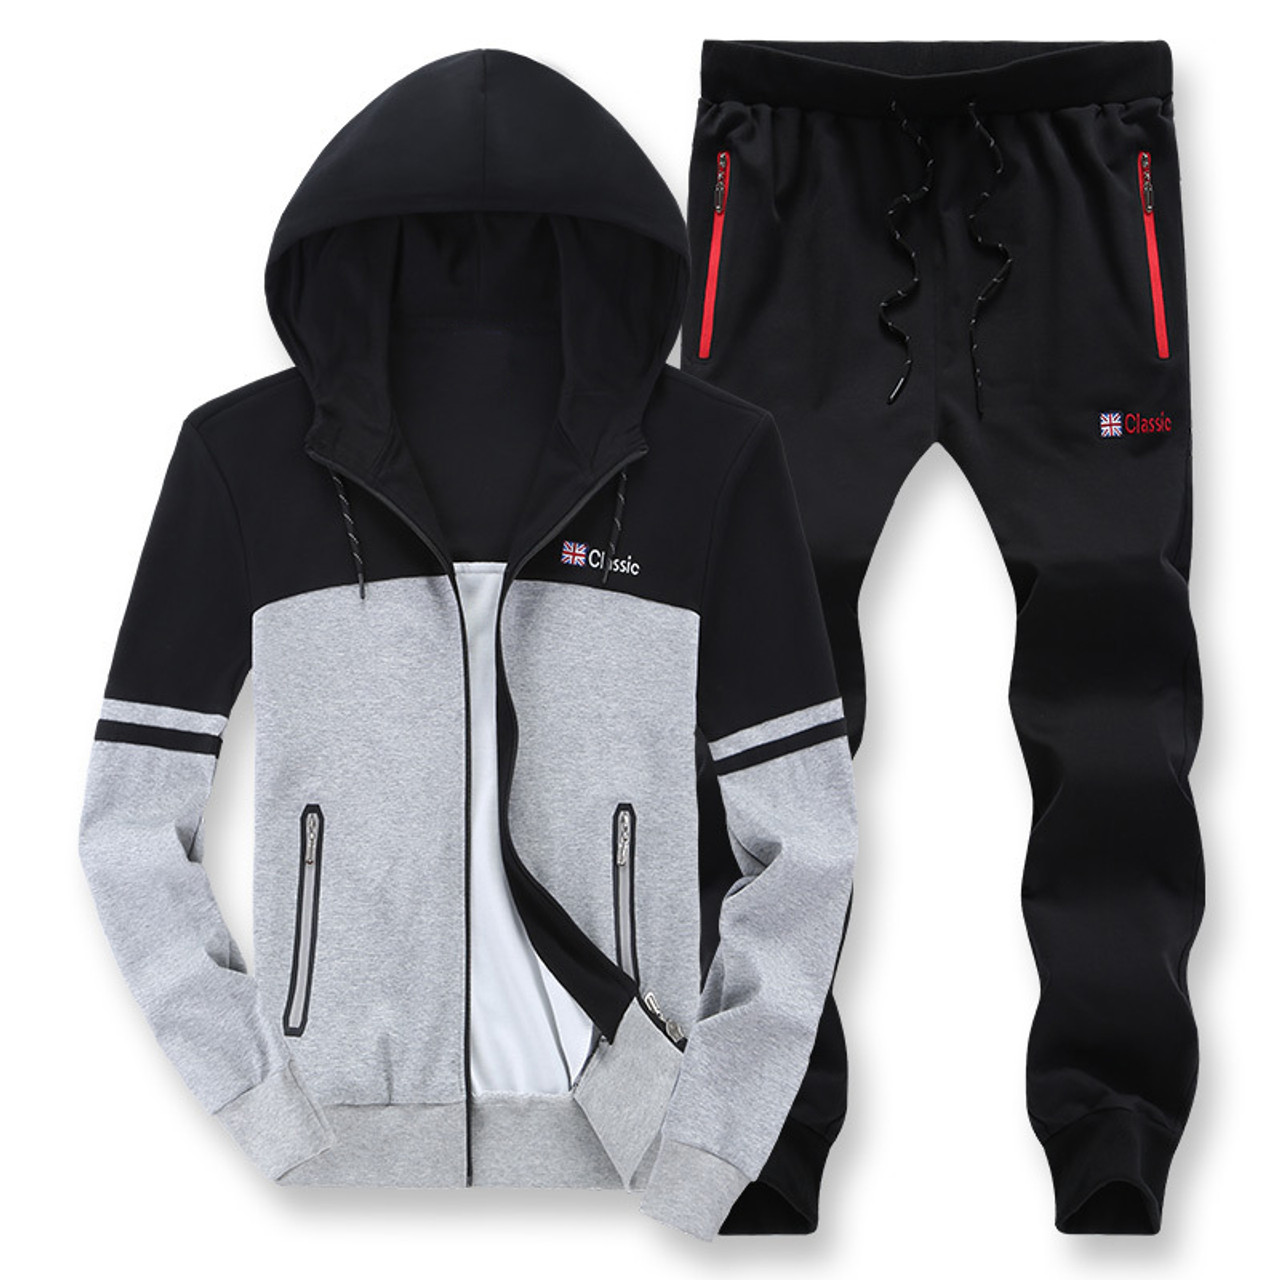 fb339990 ... Men's casual sportswear fat big size 8XL hooded tracksuit cotton sweater  plus size men sets oversize ...